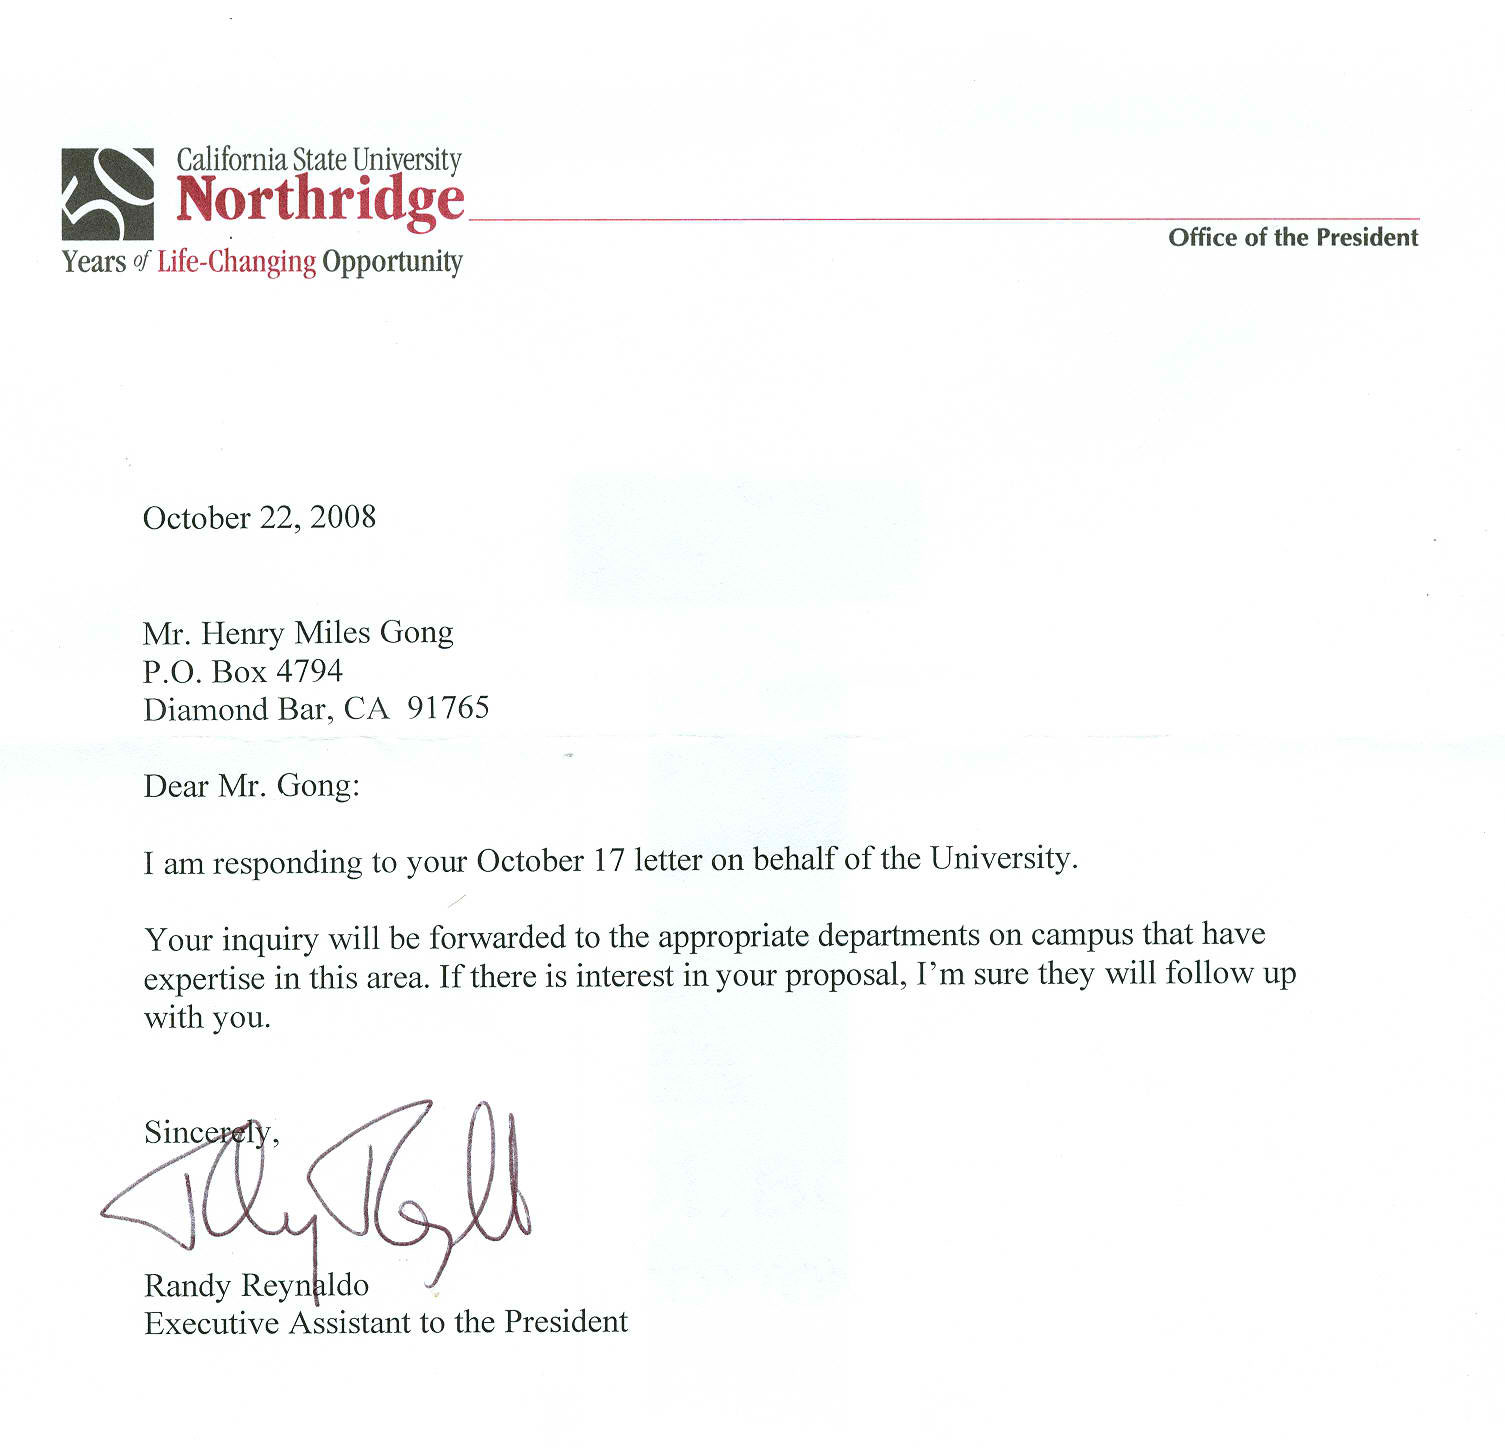 Northridge California State University_letter